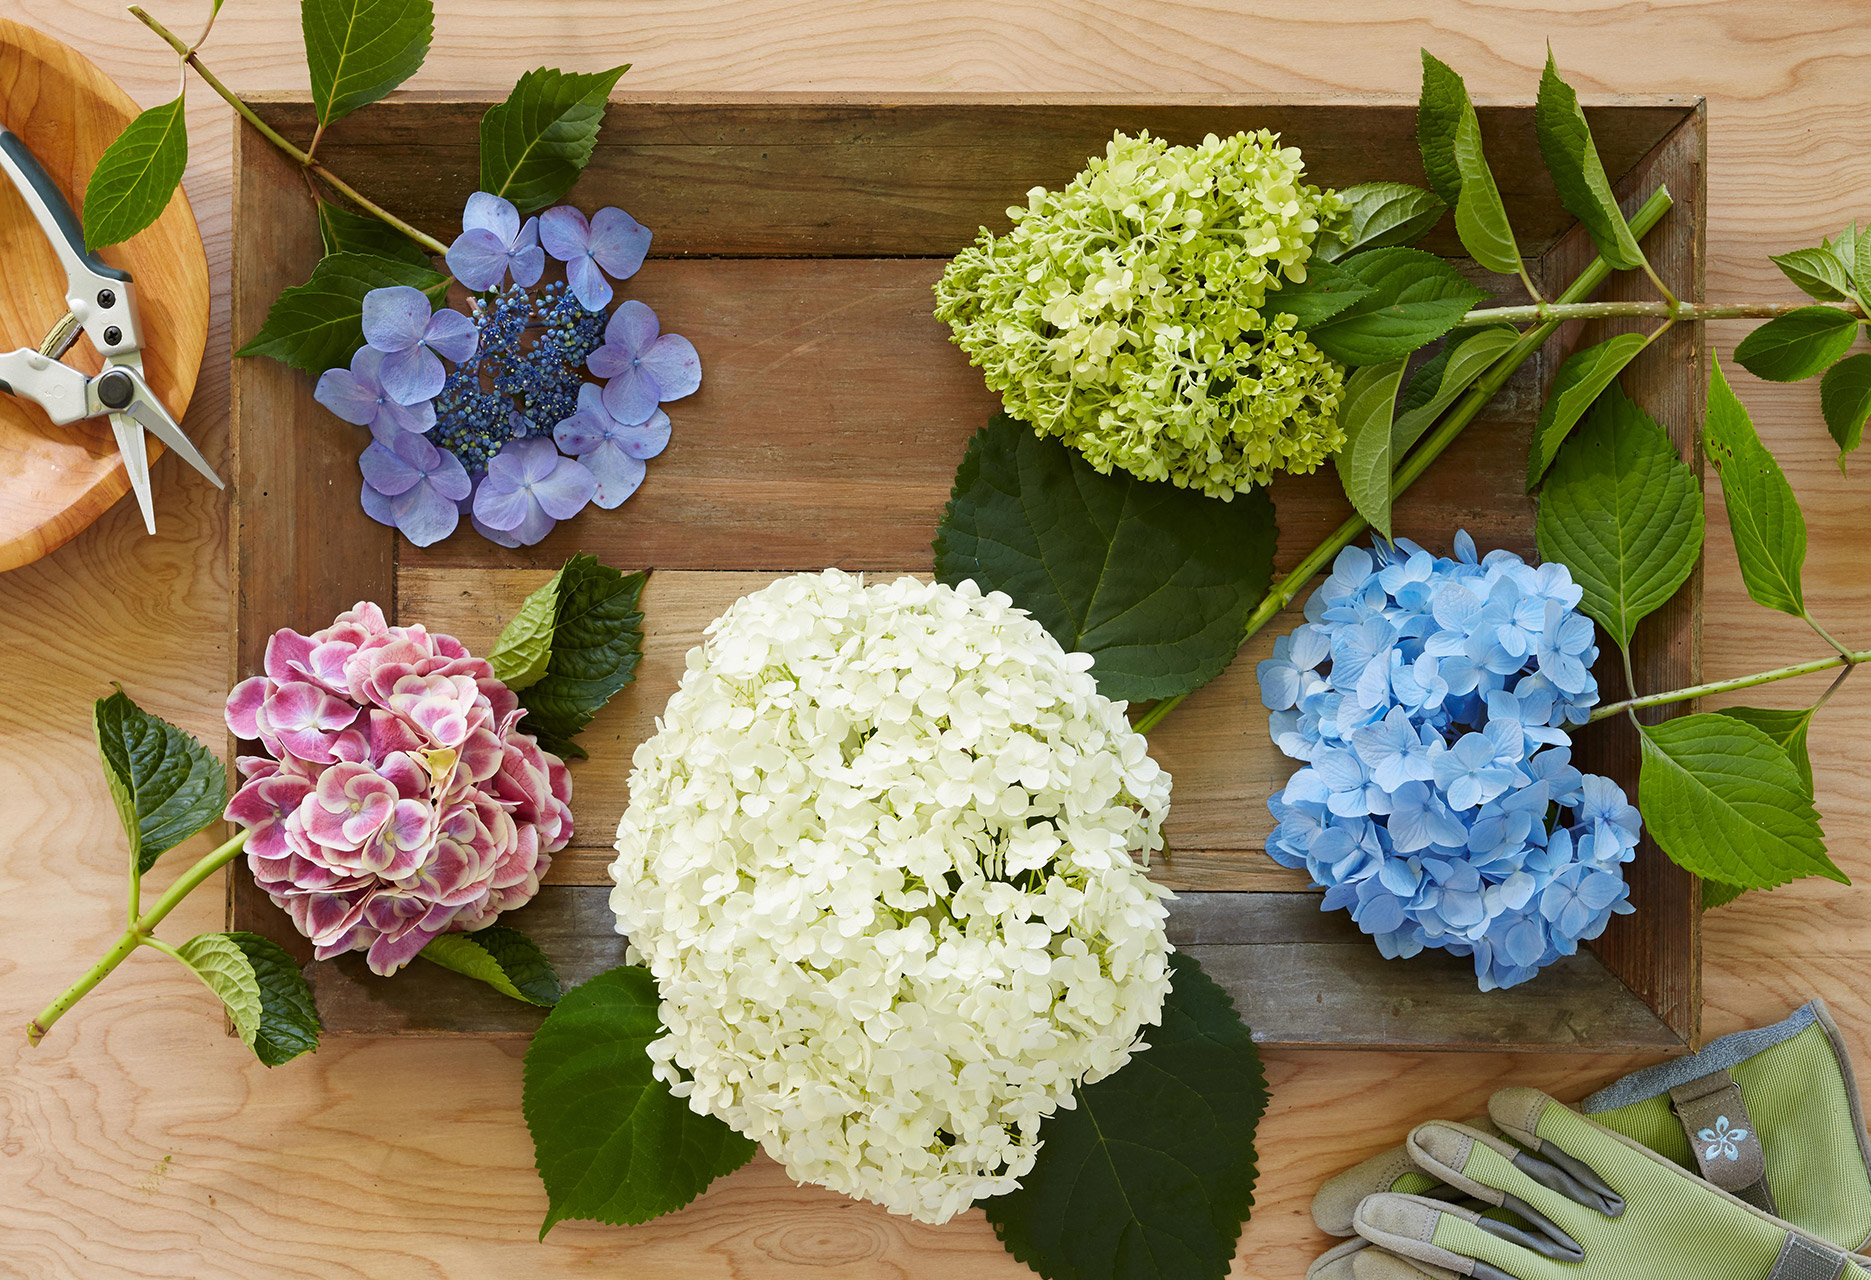 wood crate of colorful hydrangeas